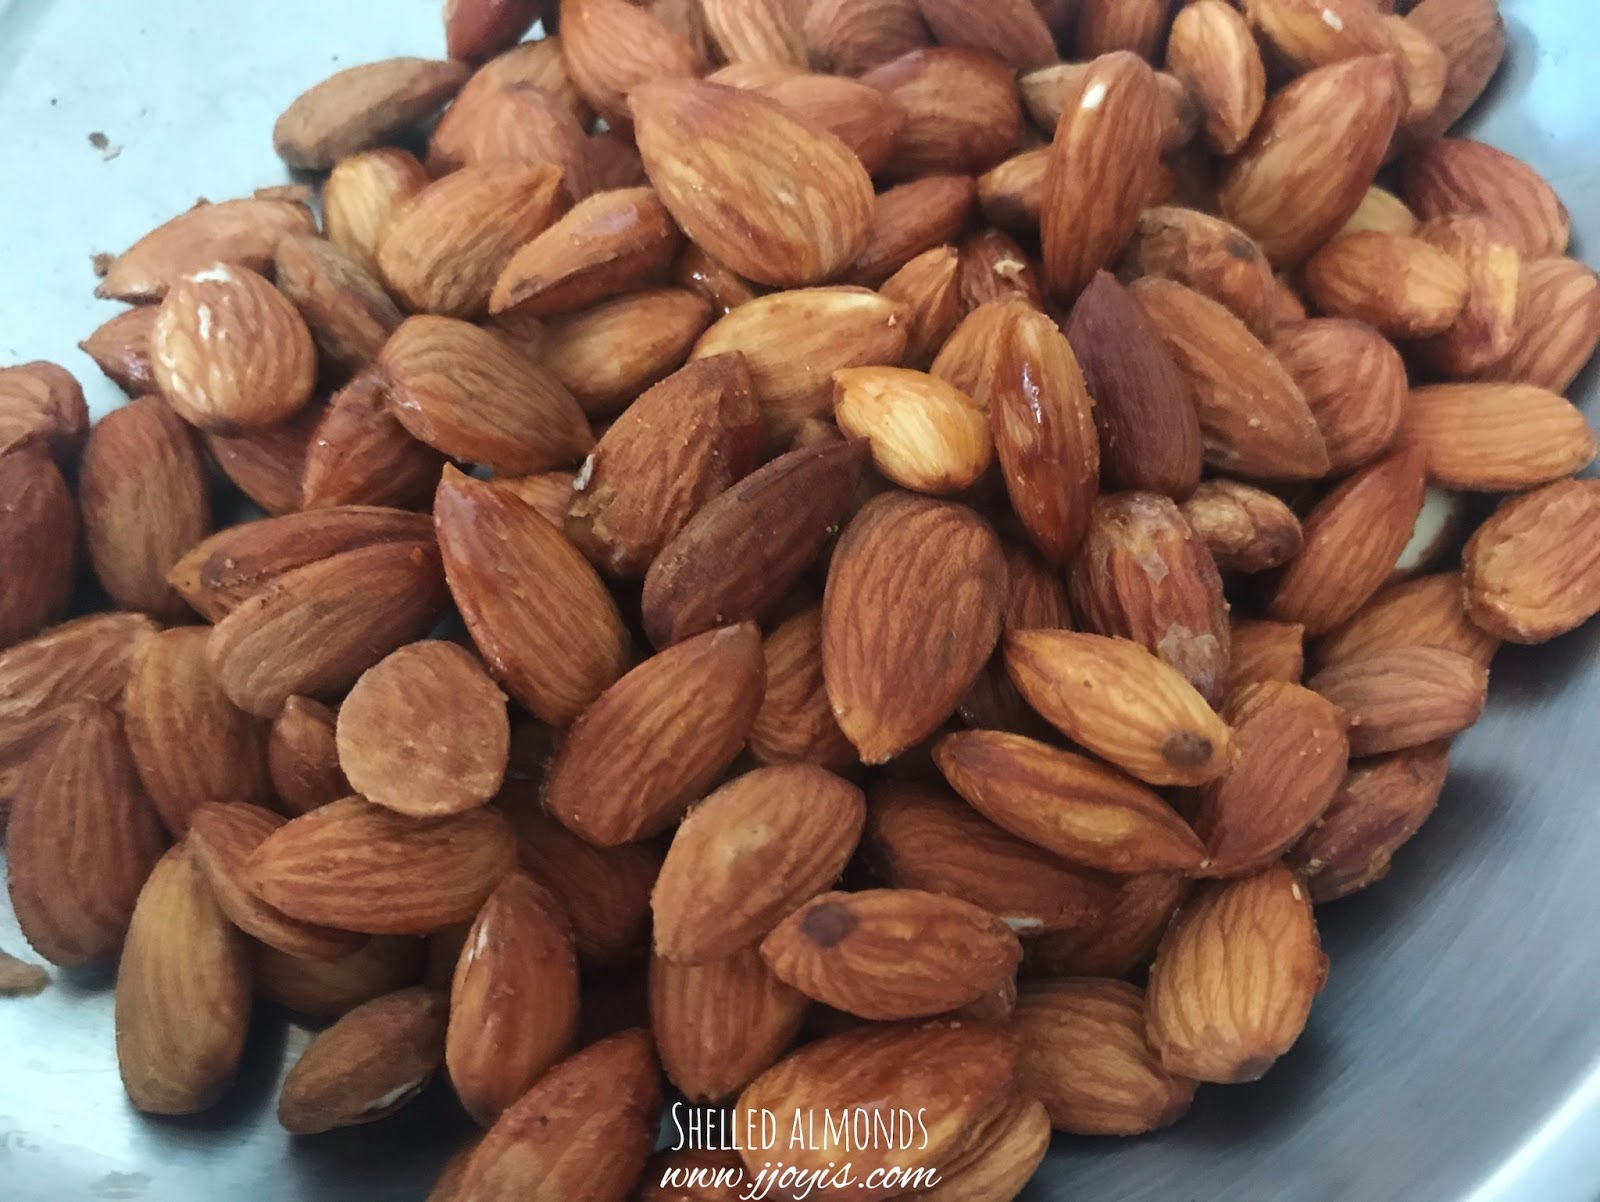 hanoi vietnam must buy almond nuts dong xuan market review gift souvenir